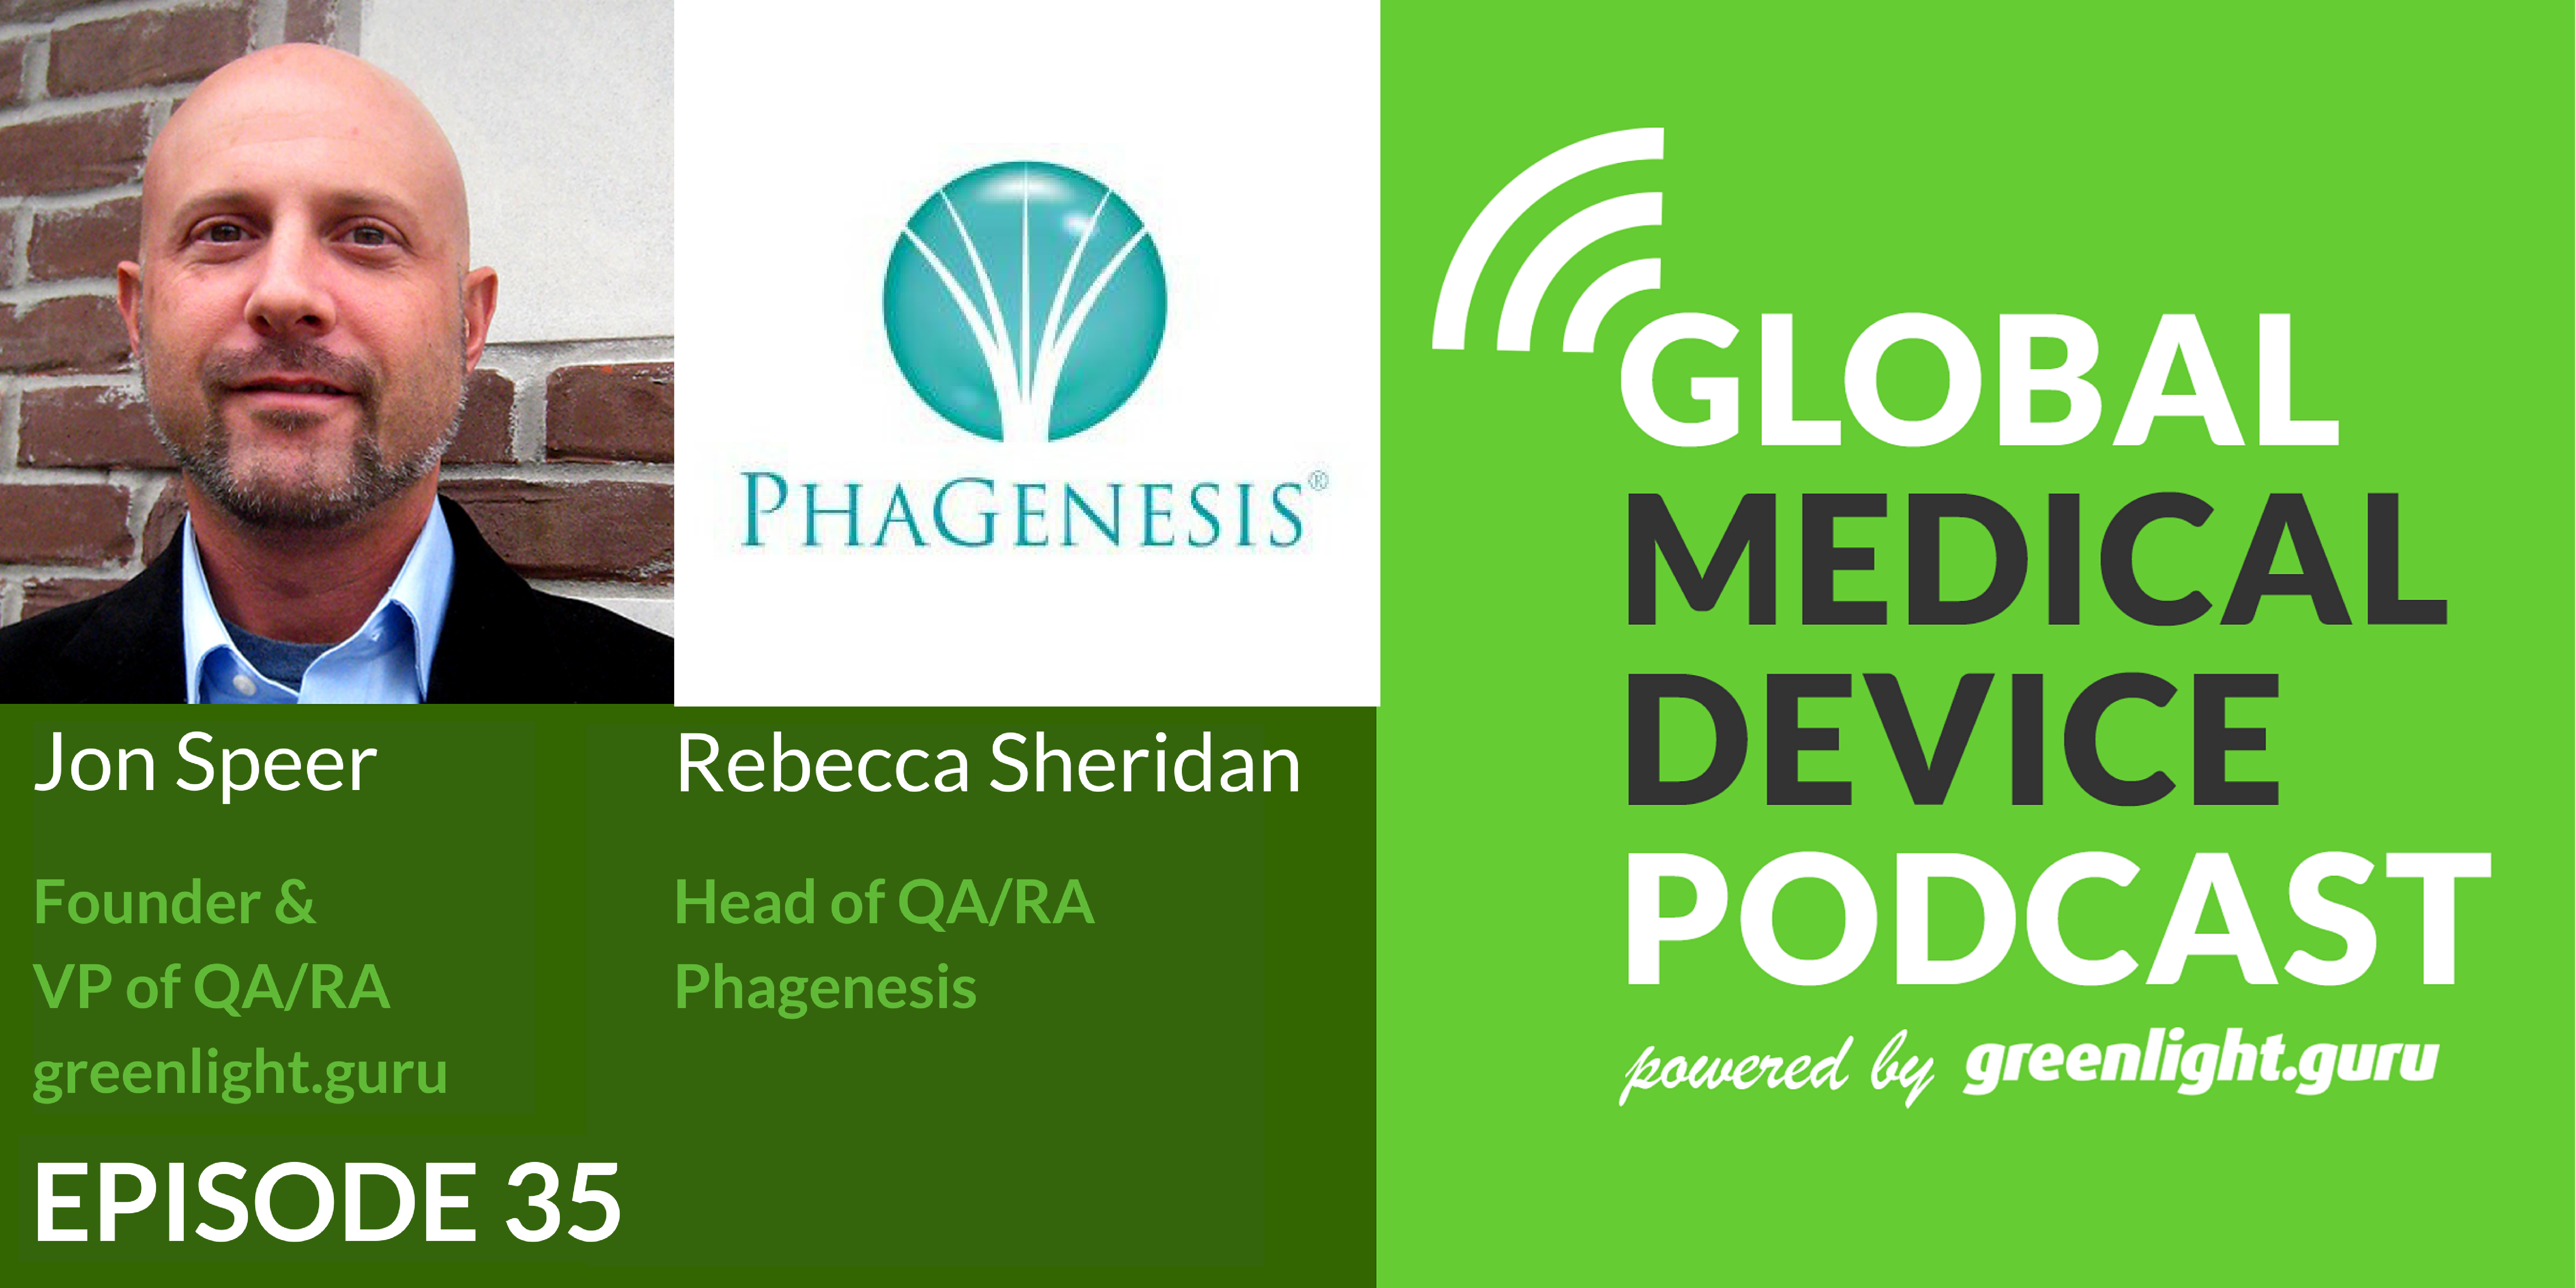 How Phagenesis Is Developing a Treatment for Dysphagia with Rebecca Sheridan - Featured Image